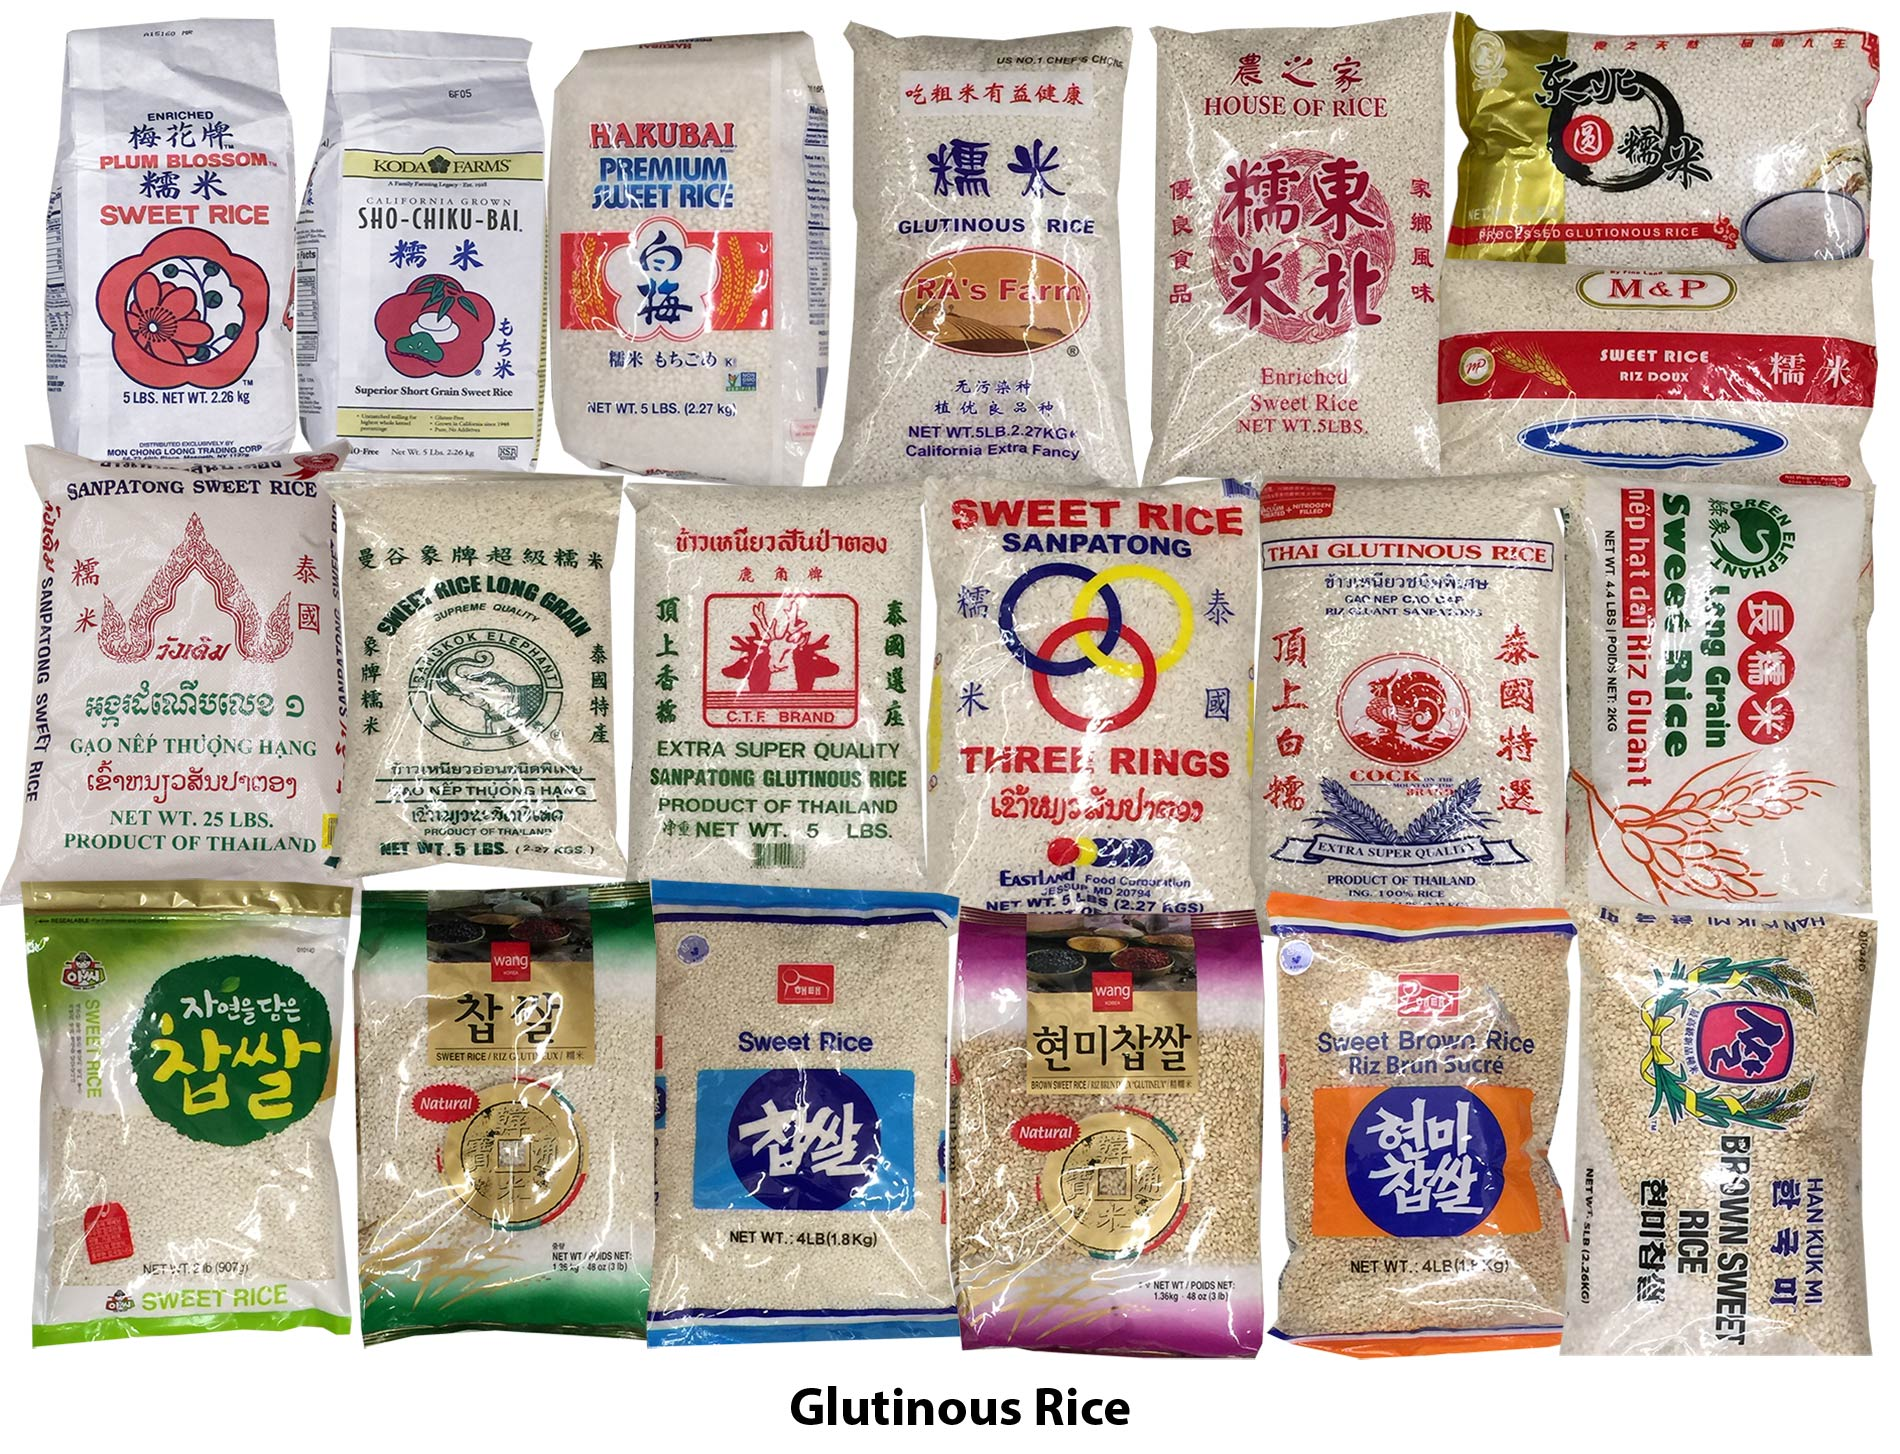 Glutinous Rices in US Supermarkets